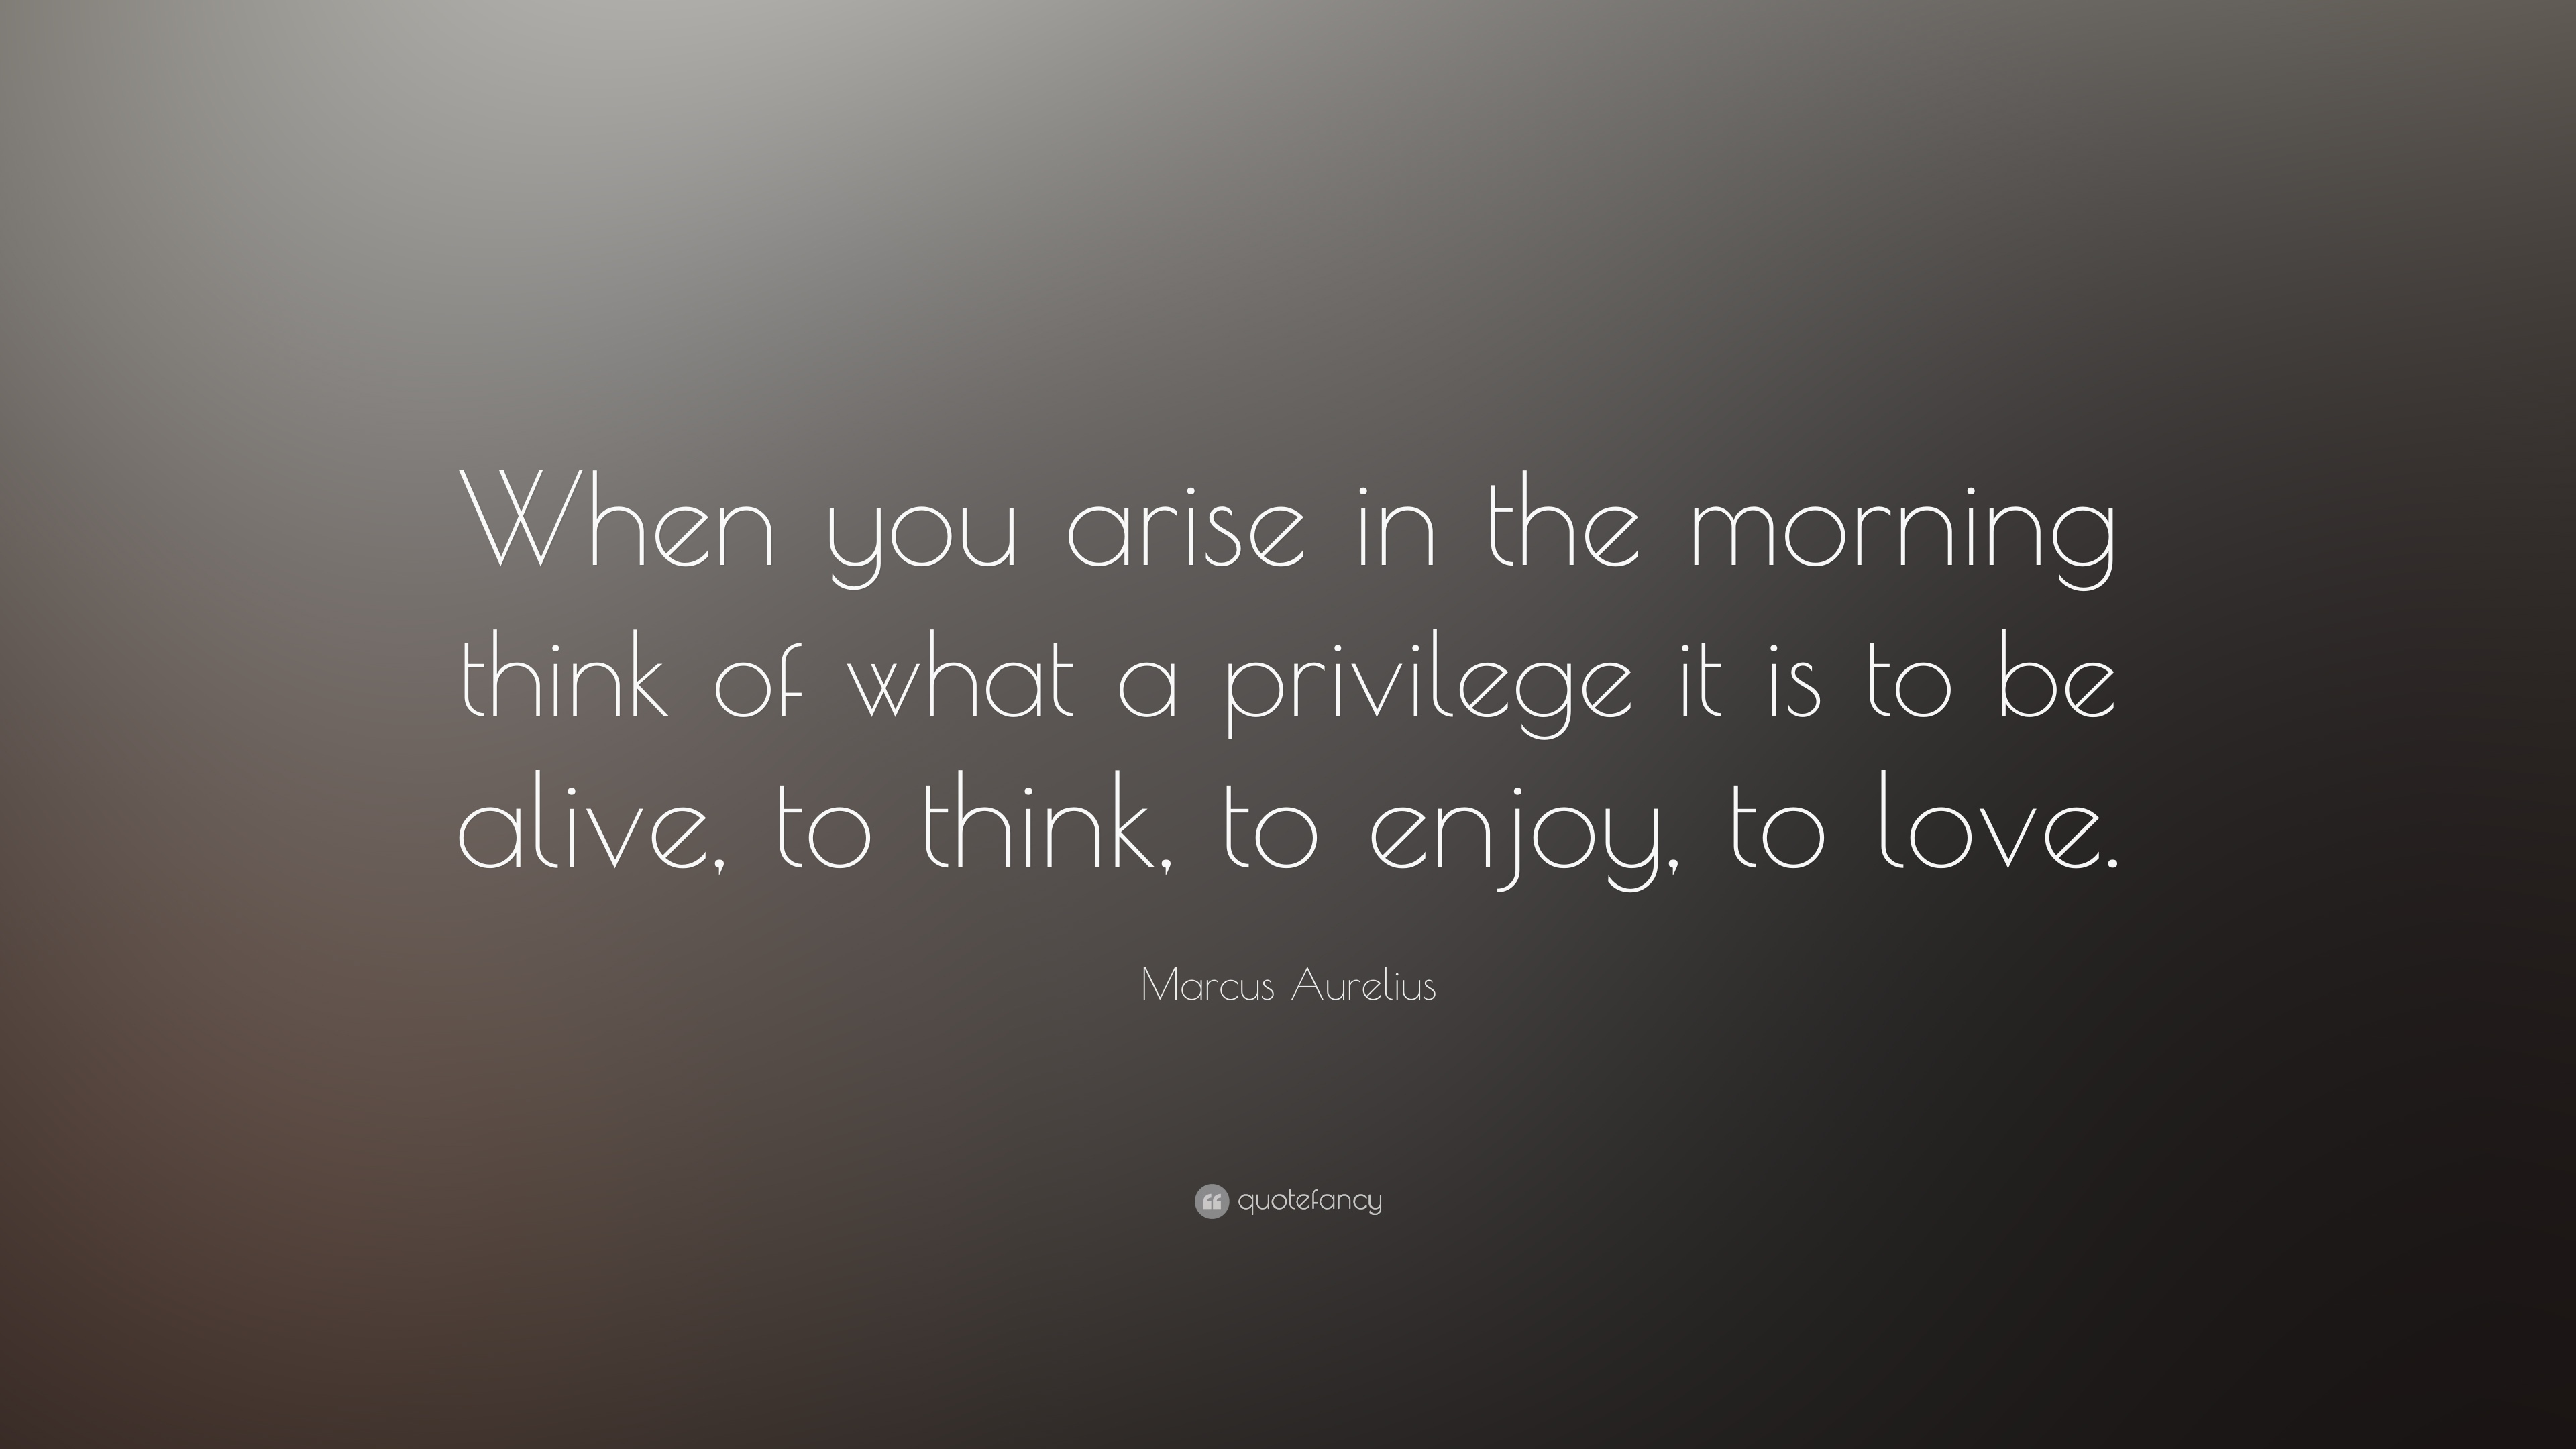 Marcus Aurelius Quote When You Arise In The Morning Think Of What